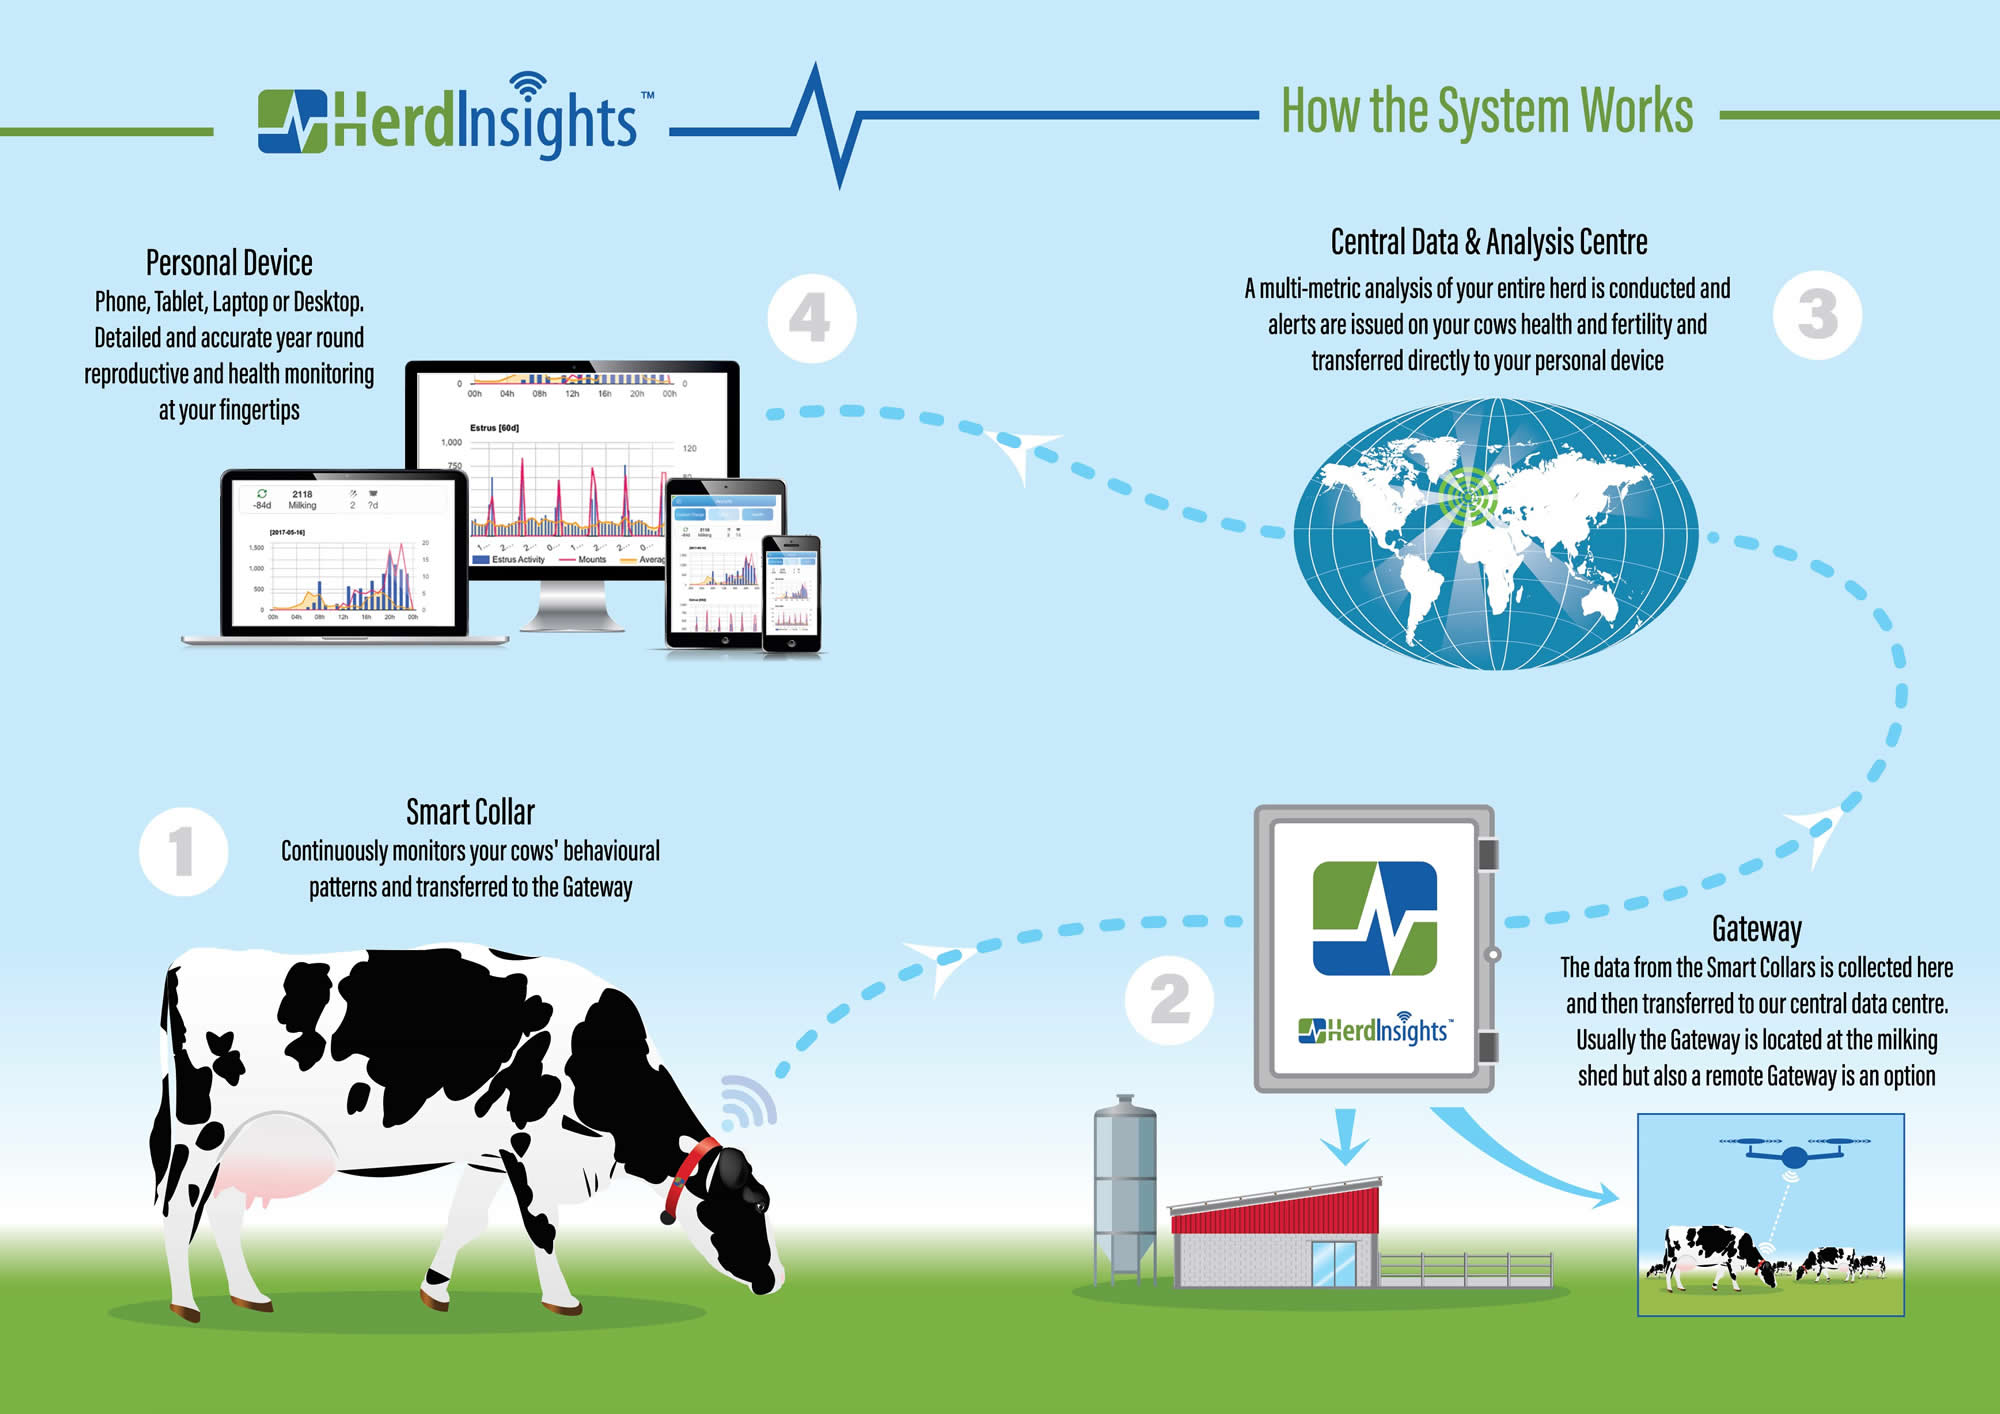 A smart collar continuously monitors your cows' behavioural patterns, the data is collected and transferred to our data centre where we conduct a multi-metric analysis of your entire herd and issue alerts on your cows health and fertility directly to your phone.